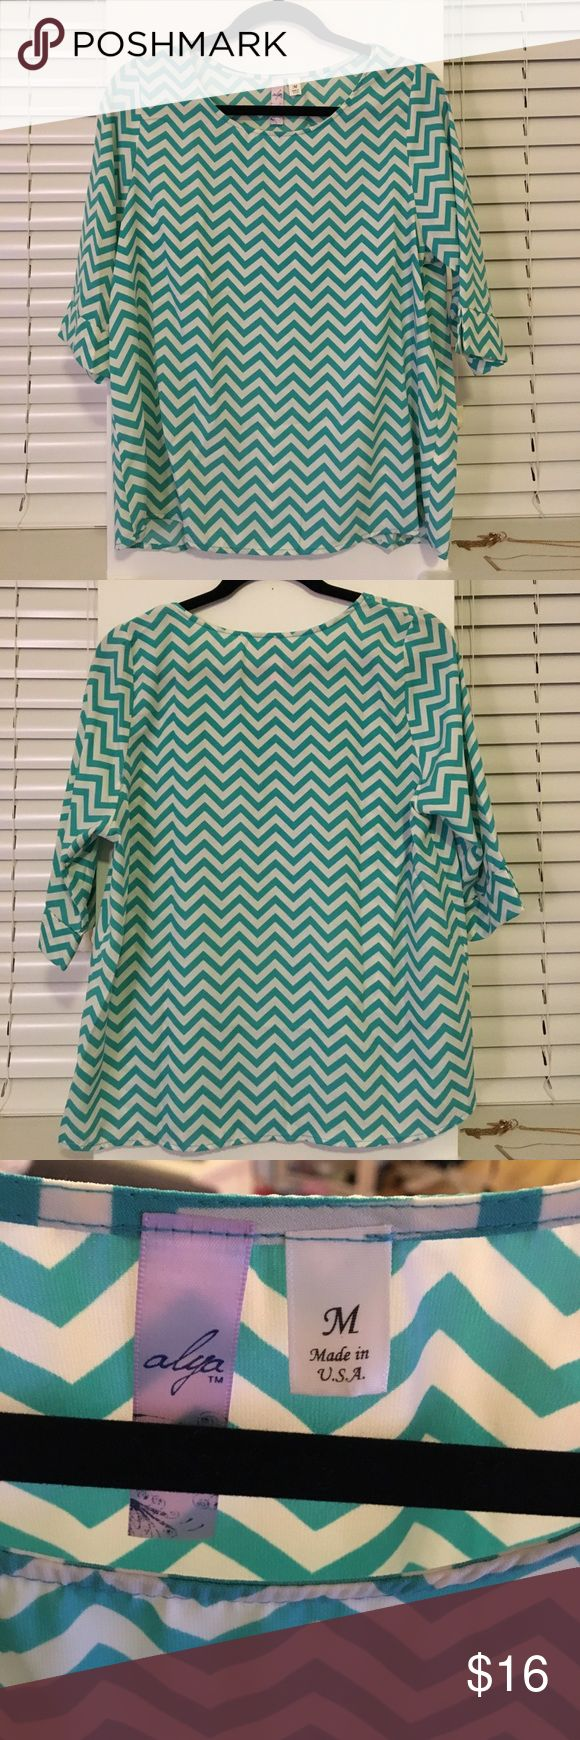 Teal & White Chevron Top 3/4 sleeve chevron patterned top, only worn a couple of times. A beautiful color to add to your closet for spring! No stains, holes, or tears. 100% polyester. Smoke-free home. Francesca's Collections Tops Blouses